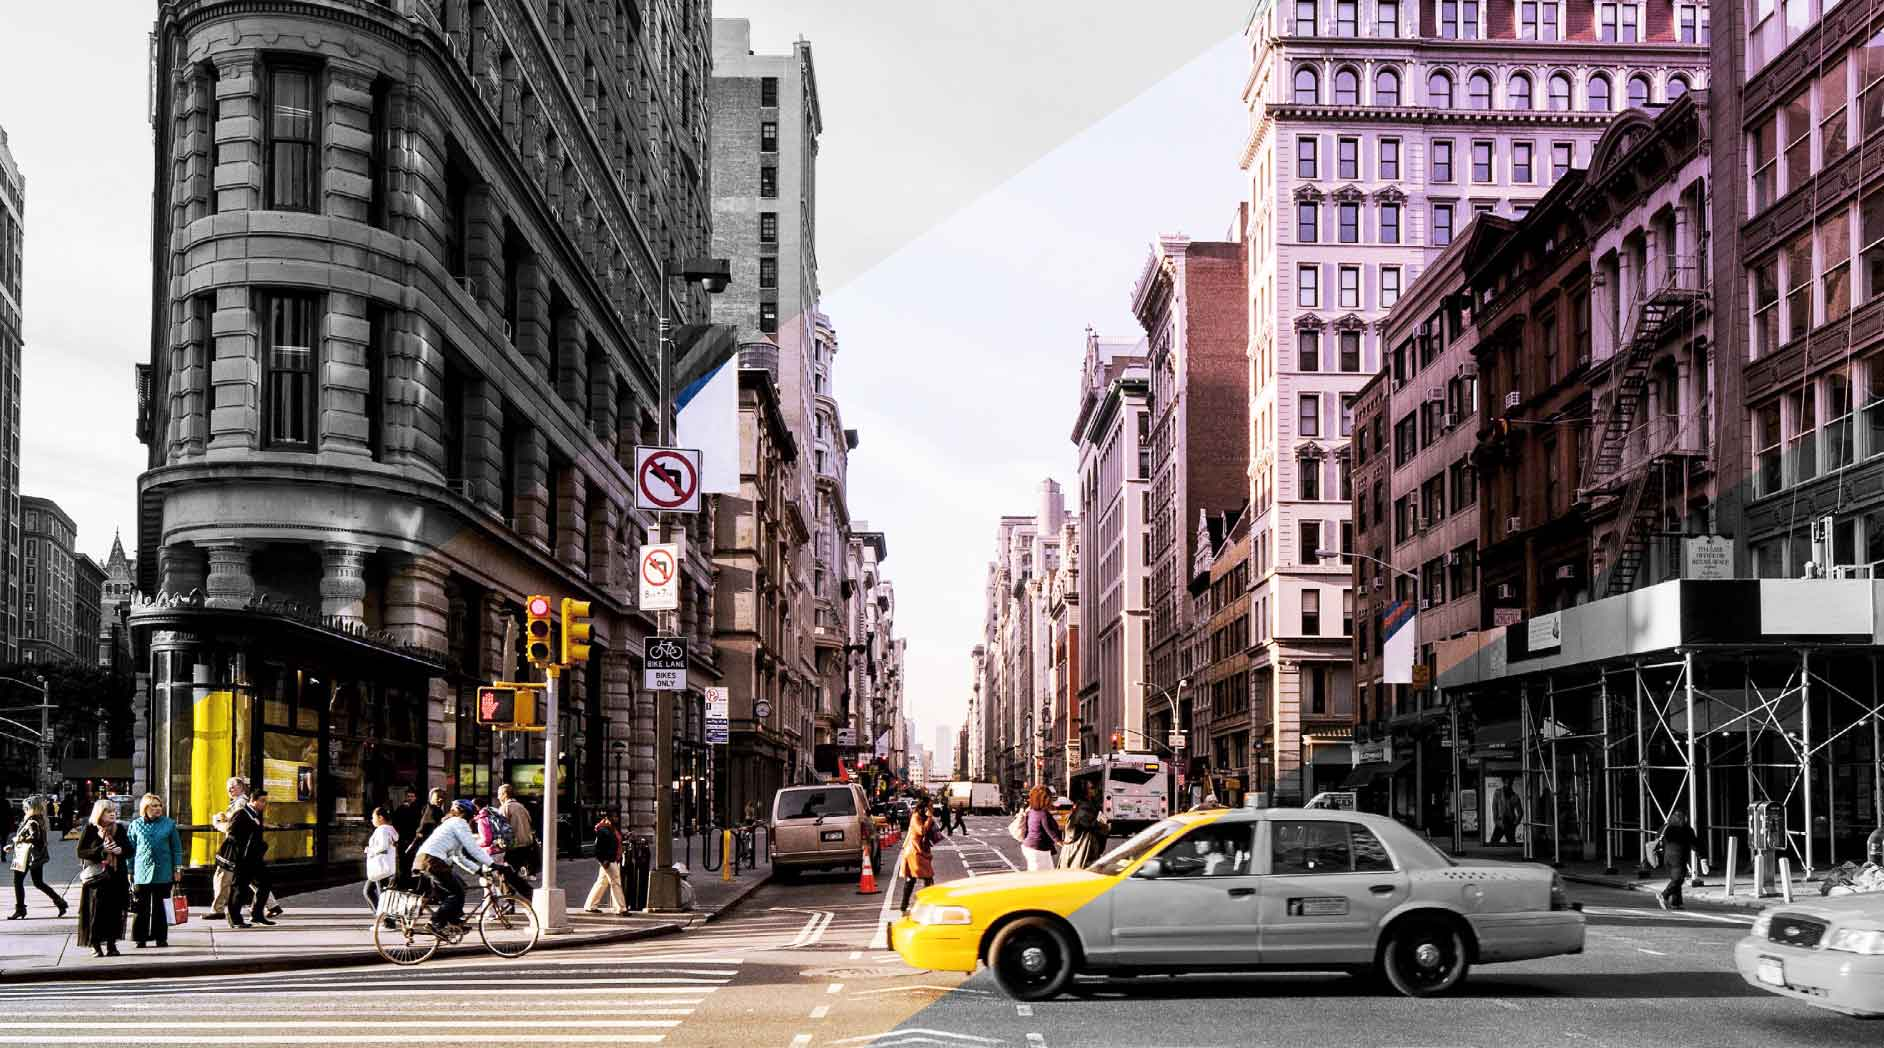 A predominately black and white image of a busy city street in New York City; a diagonal stripe through the middle reveals the image's color, including the yellow a taxi